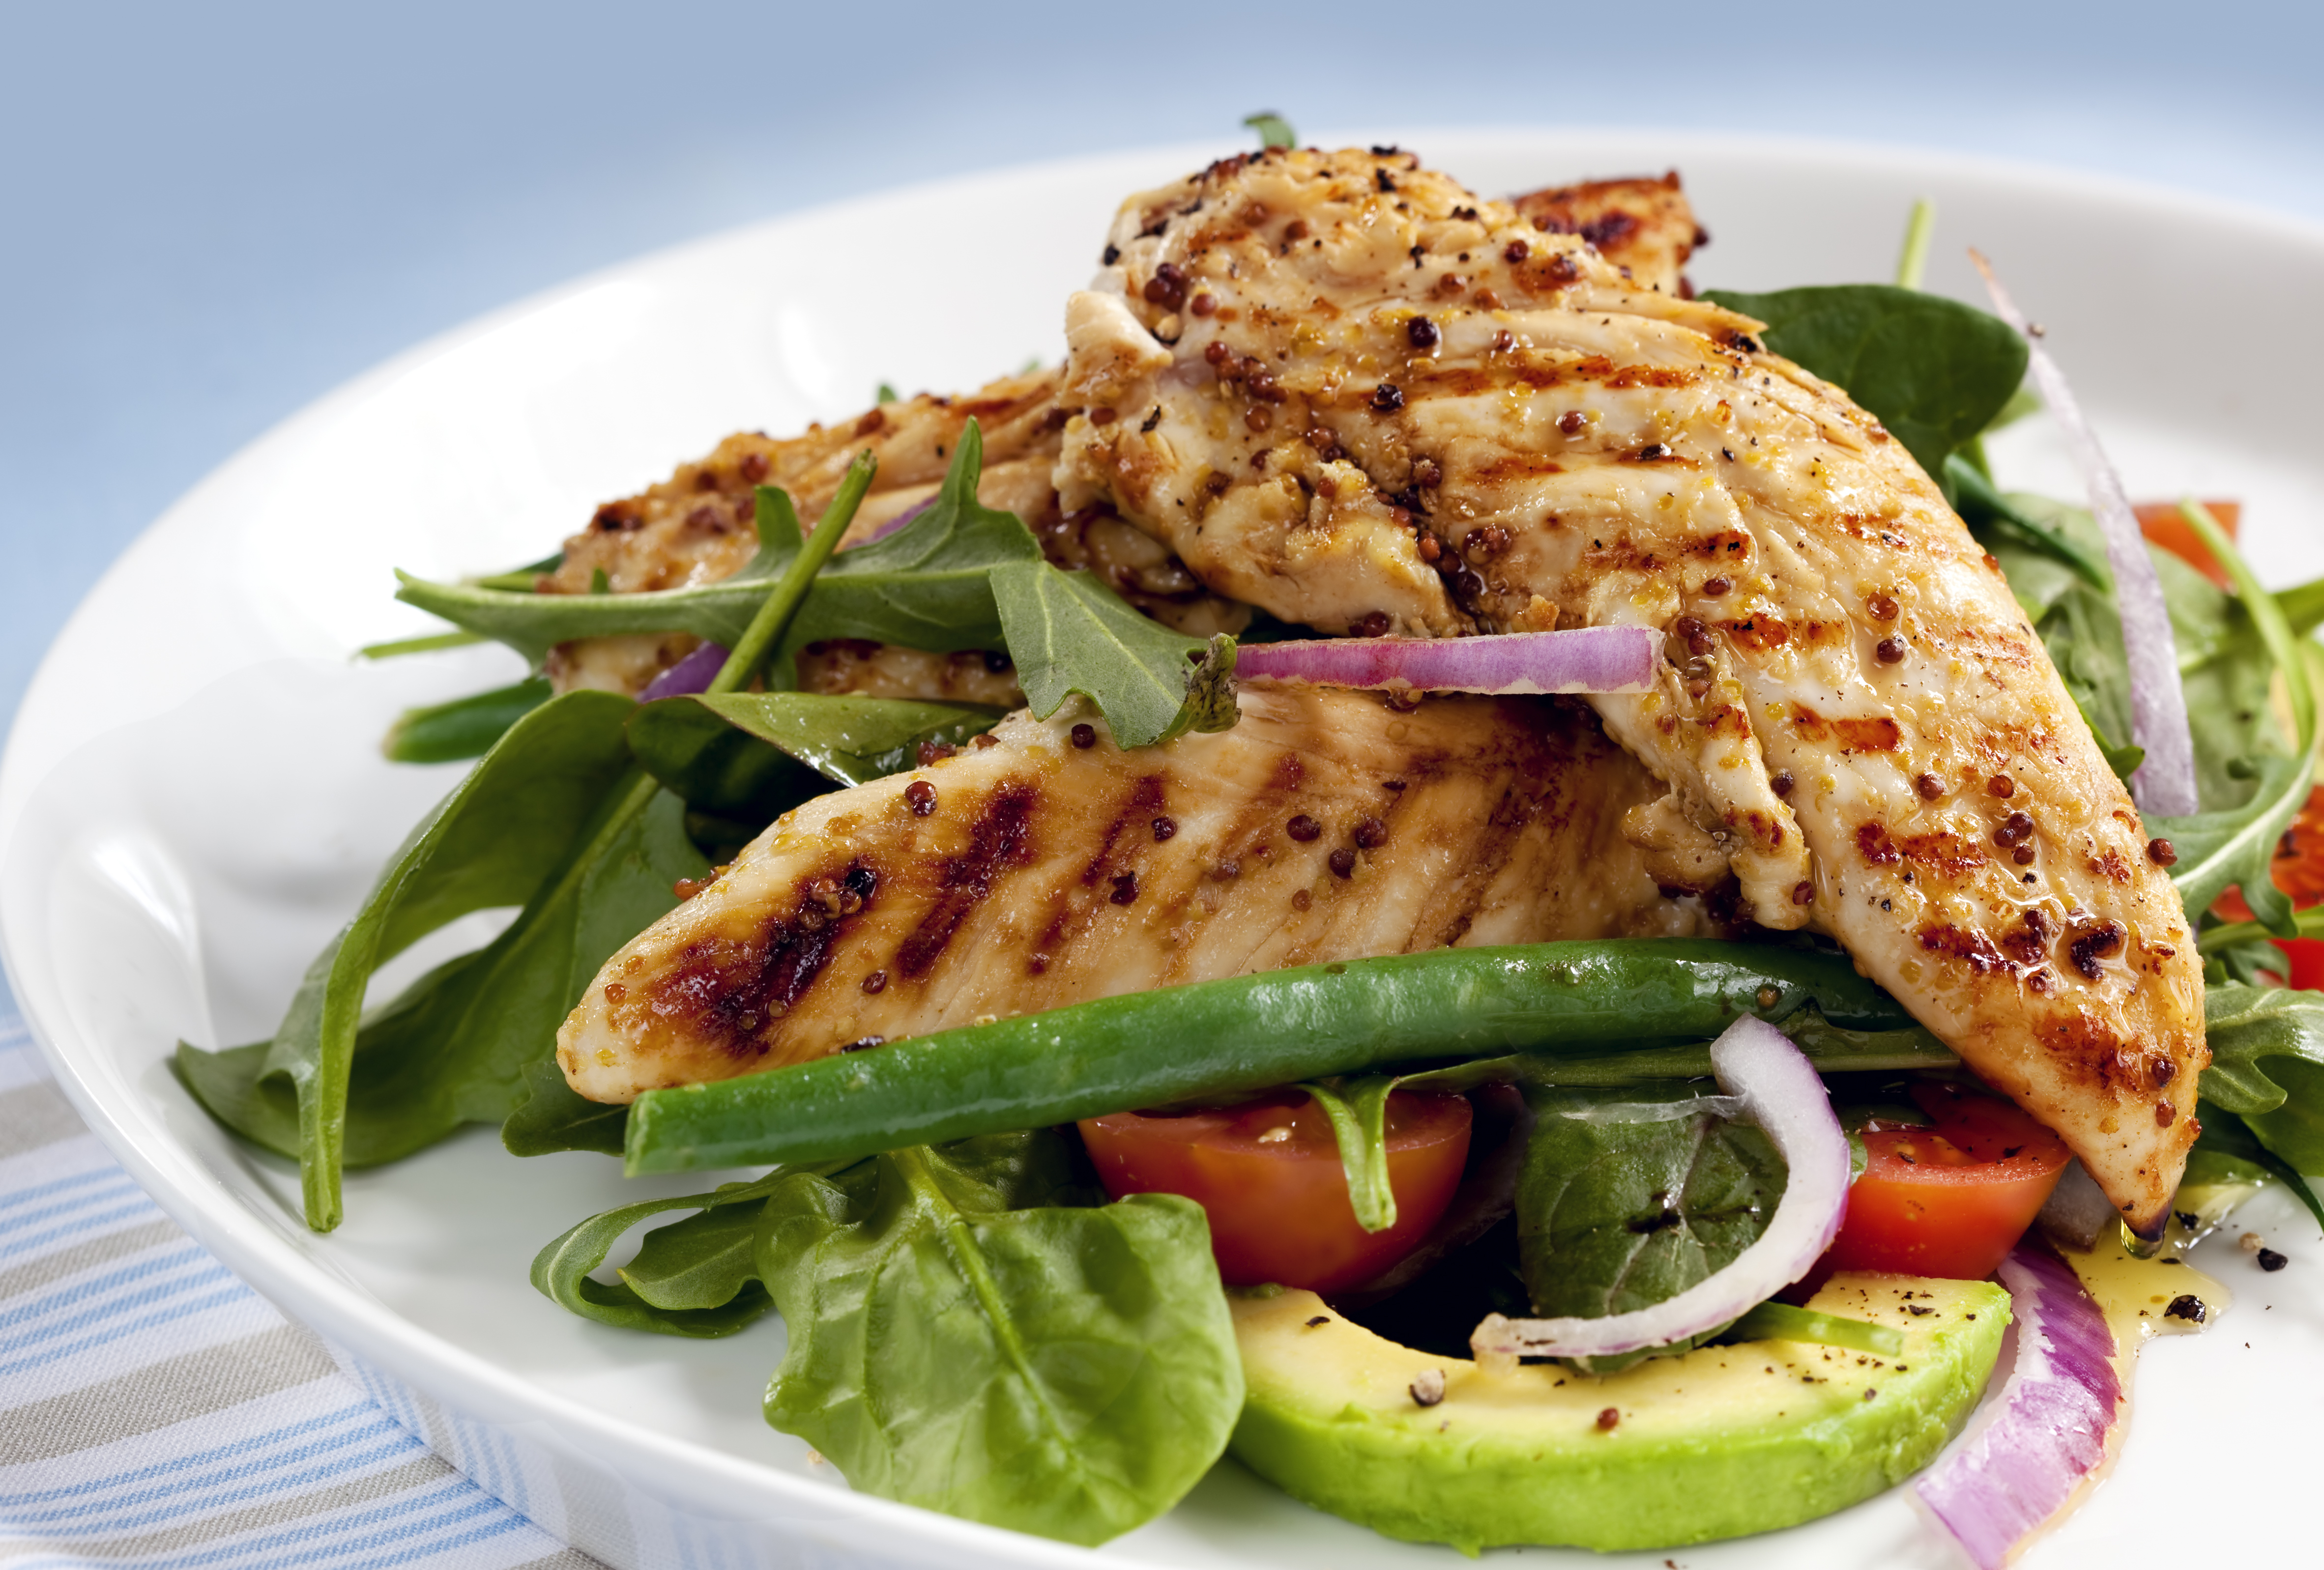 Healthy eating in the usa the international student blog the salad of grilled chicken tenderloins with avocado tomatoes red onion green beans forumfinder Gallery